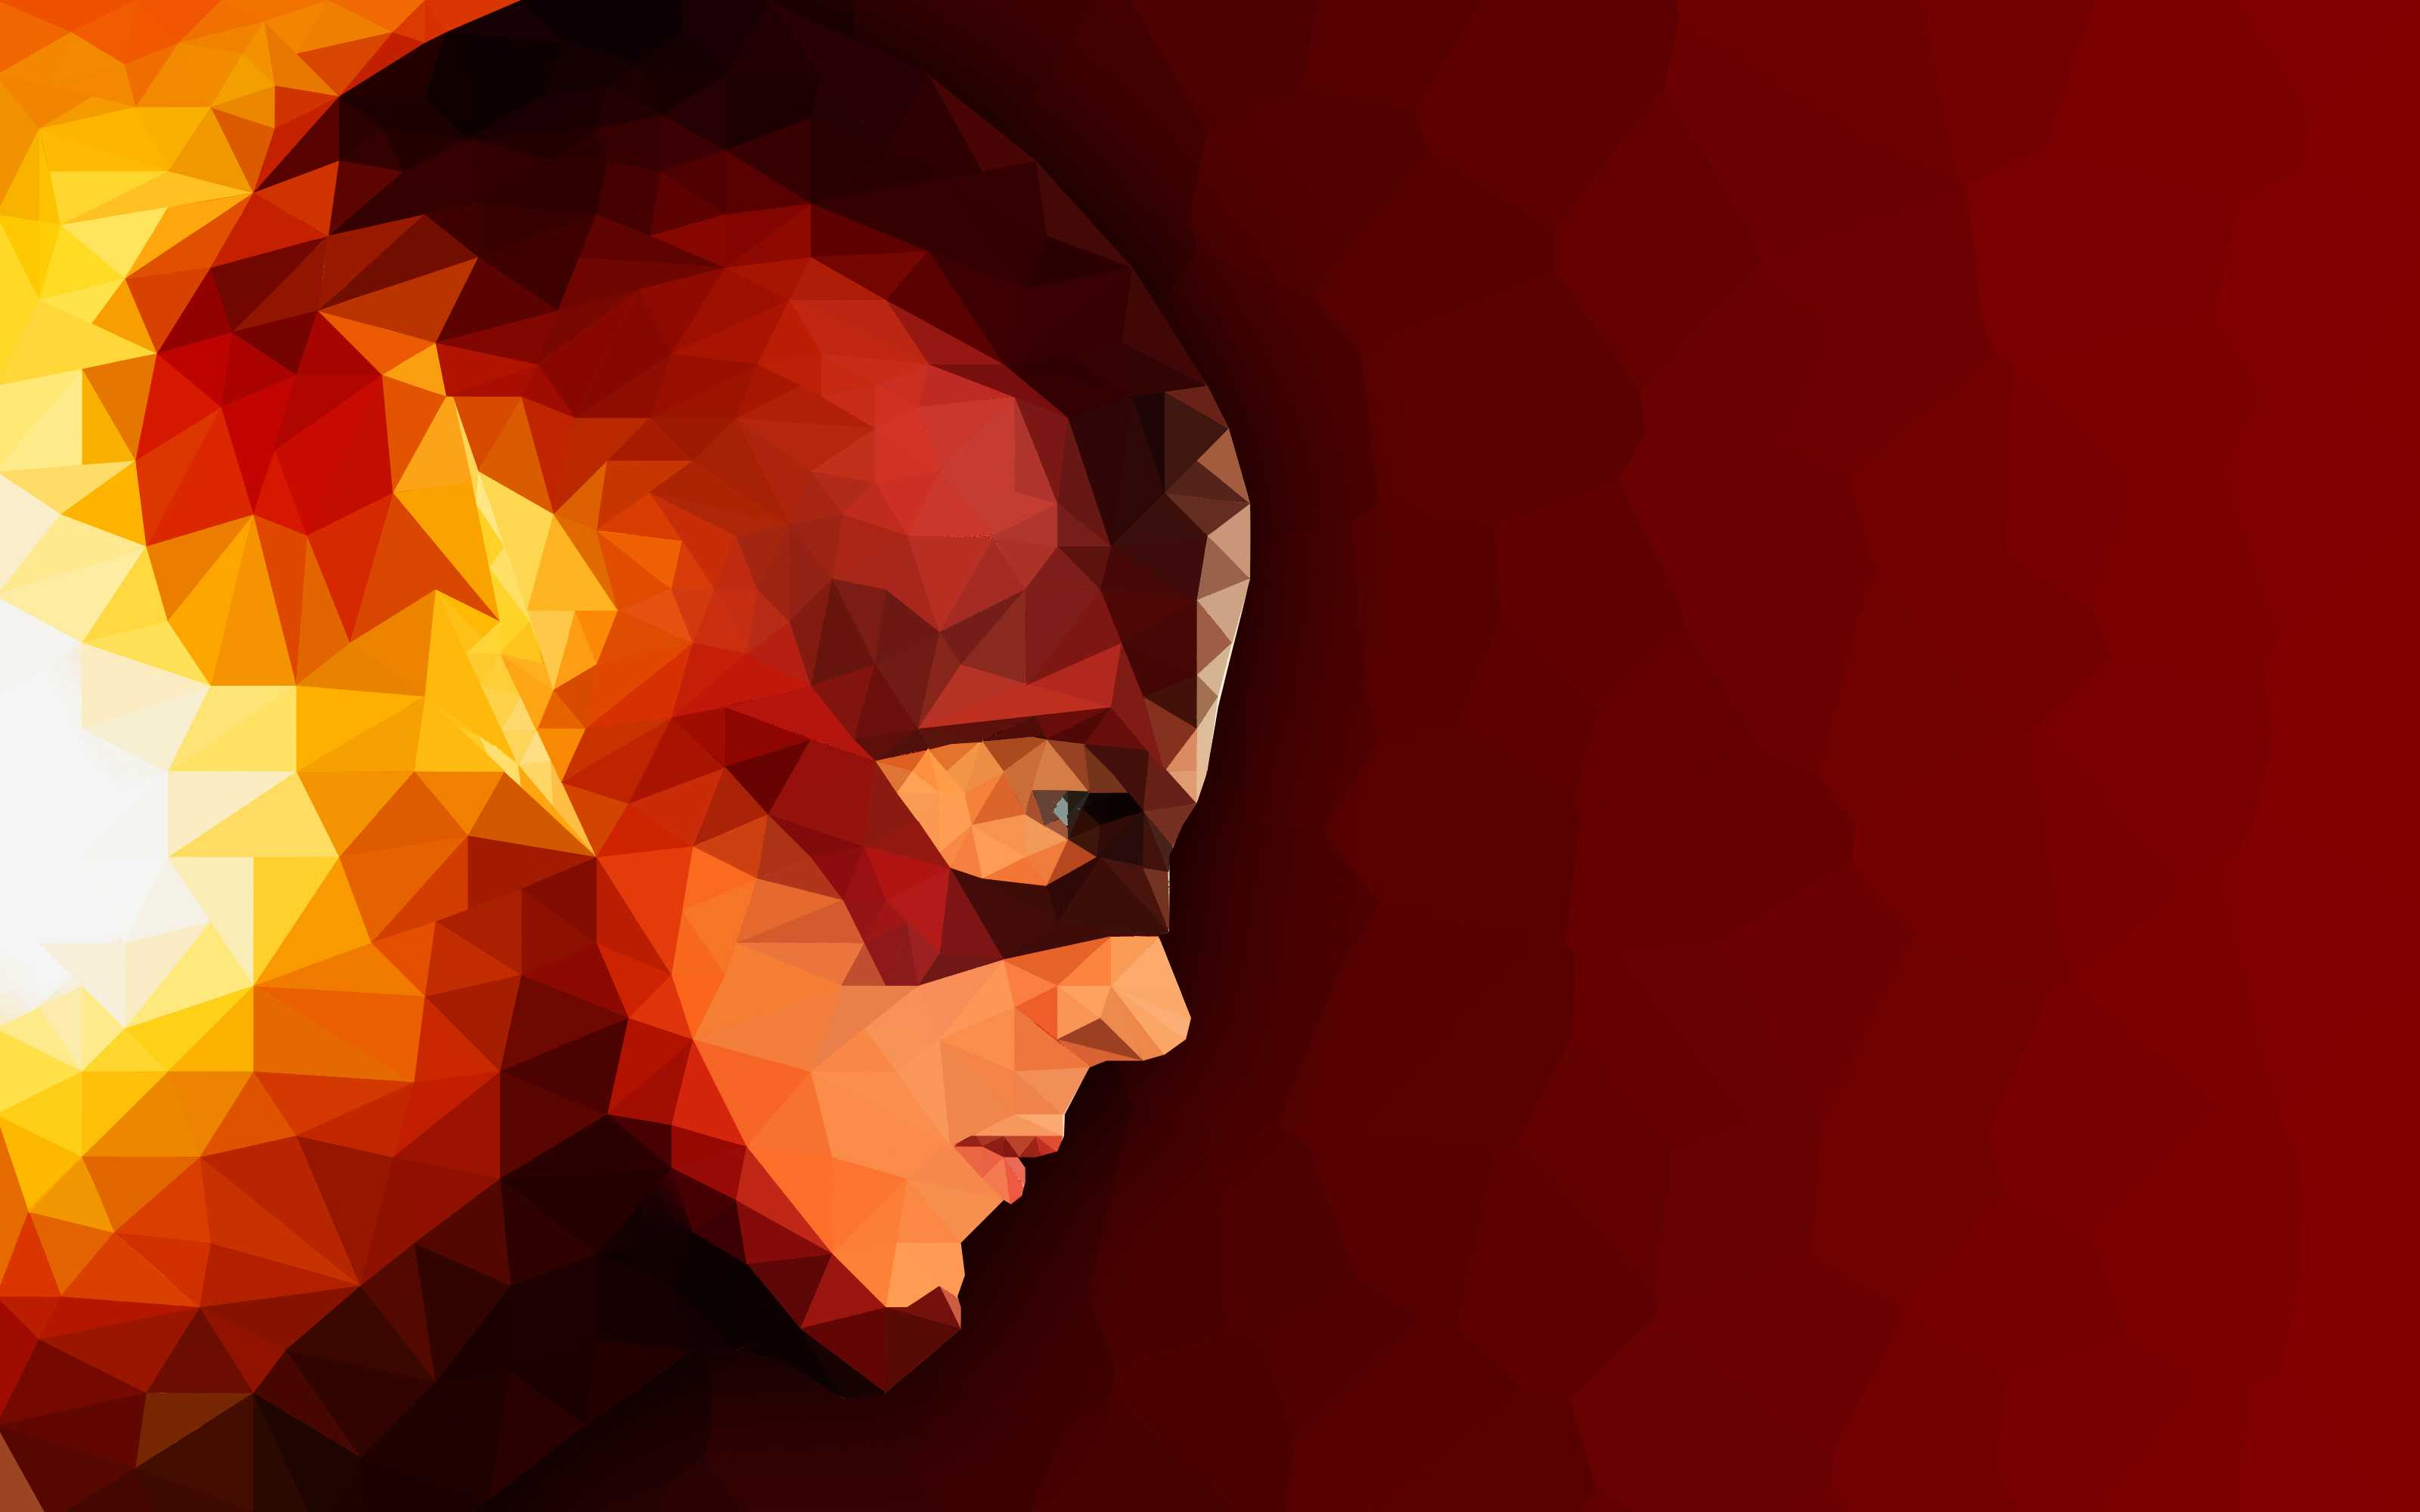 The Flash Low poly Artwork